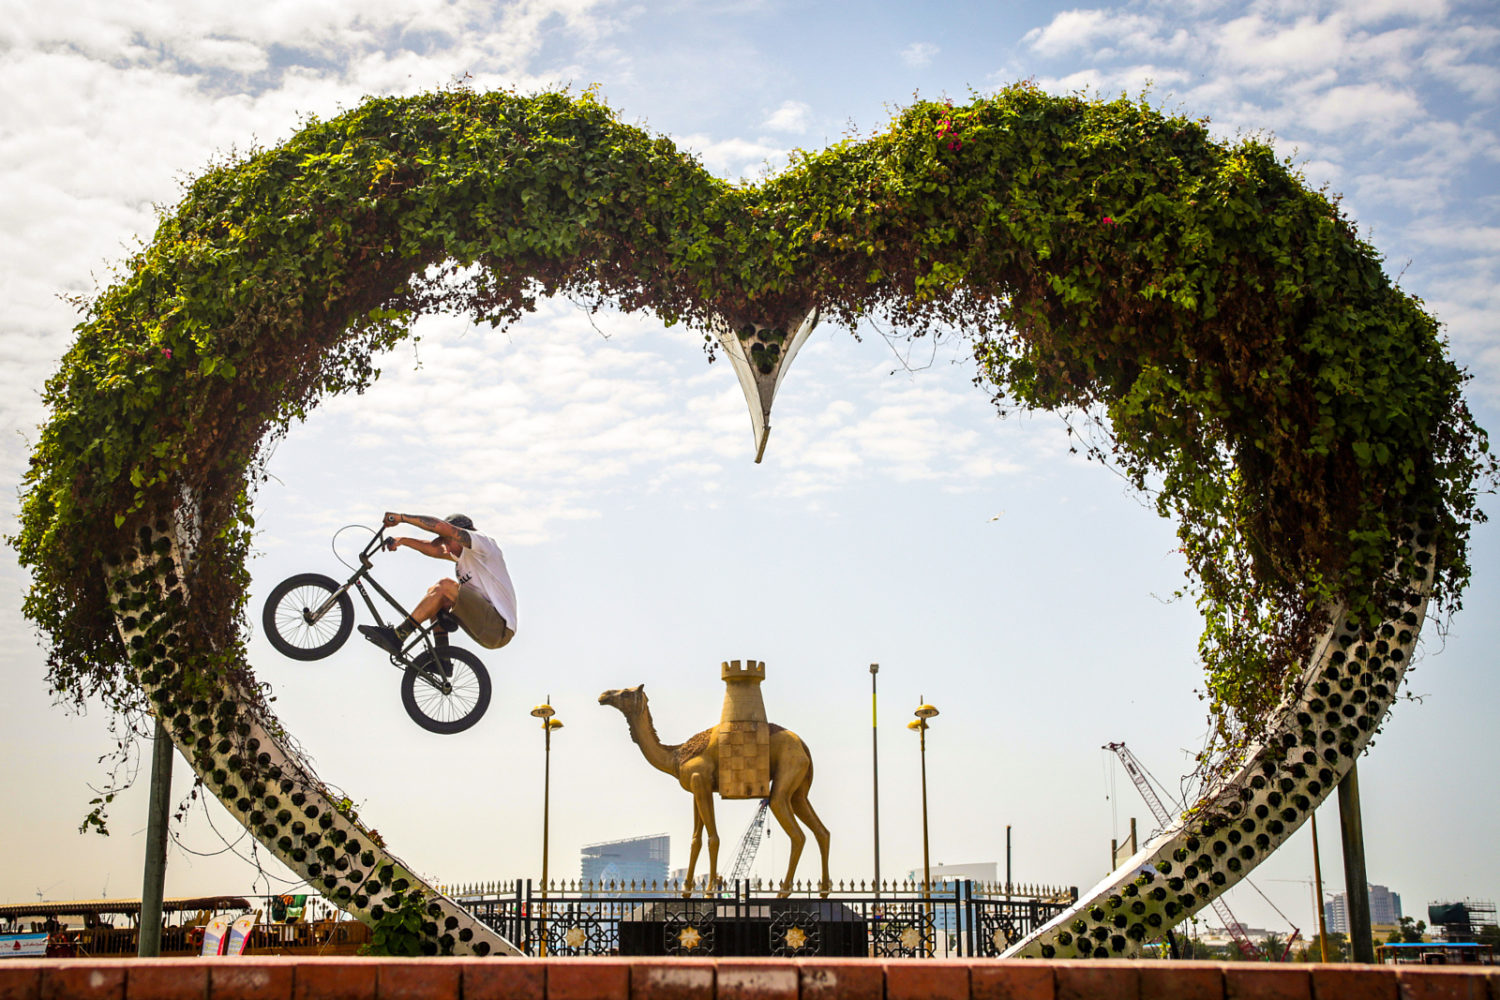 26 Epic Action Photos Shot In Cities Around the World